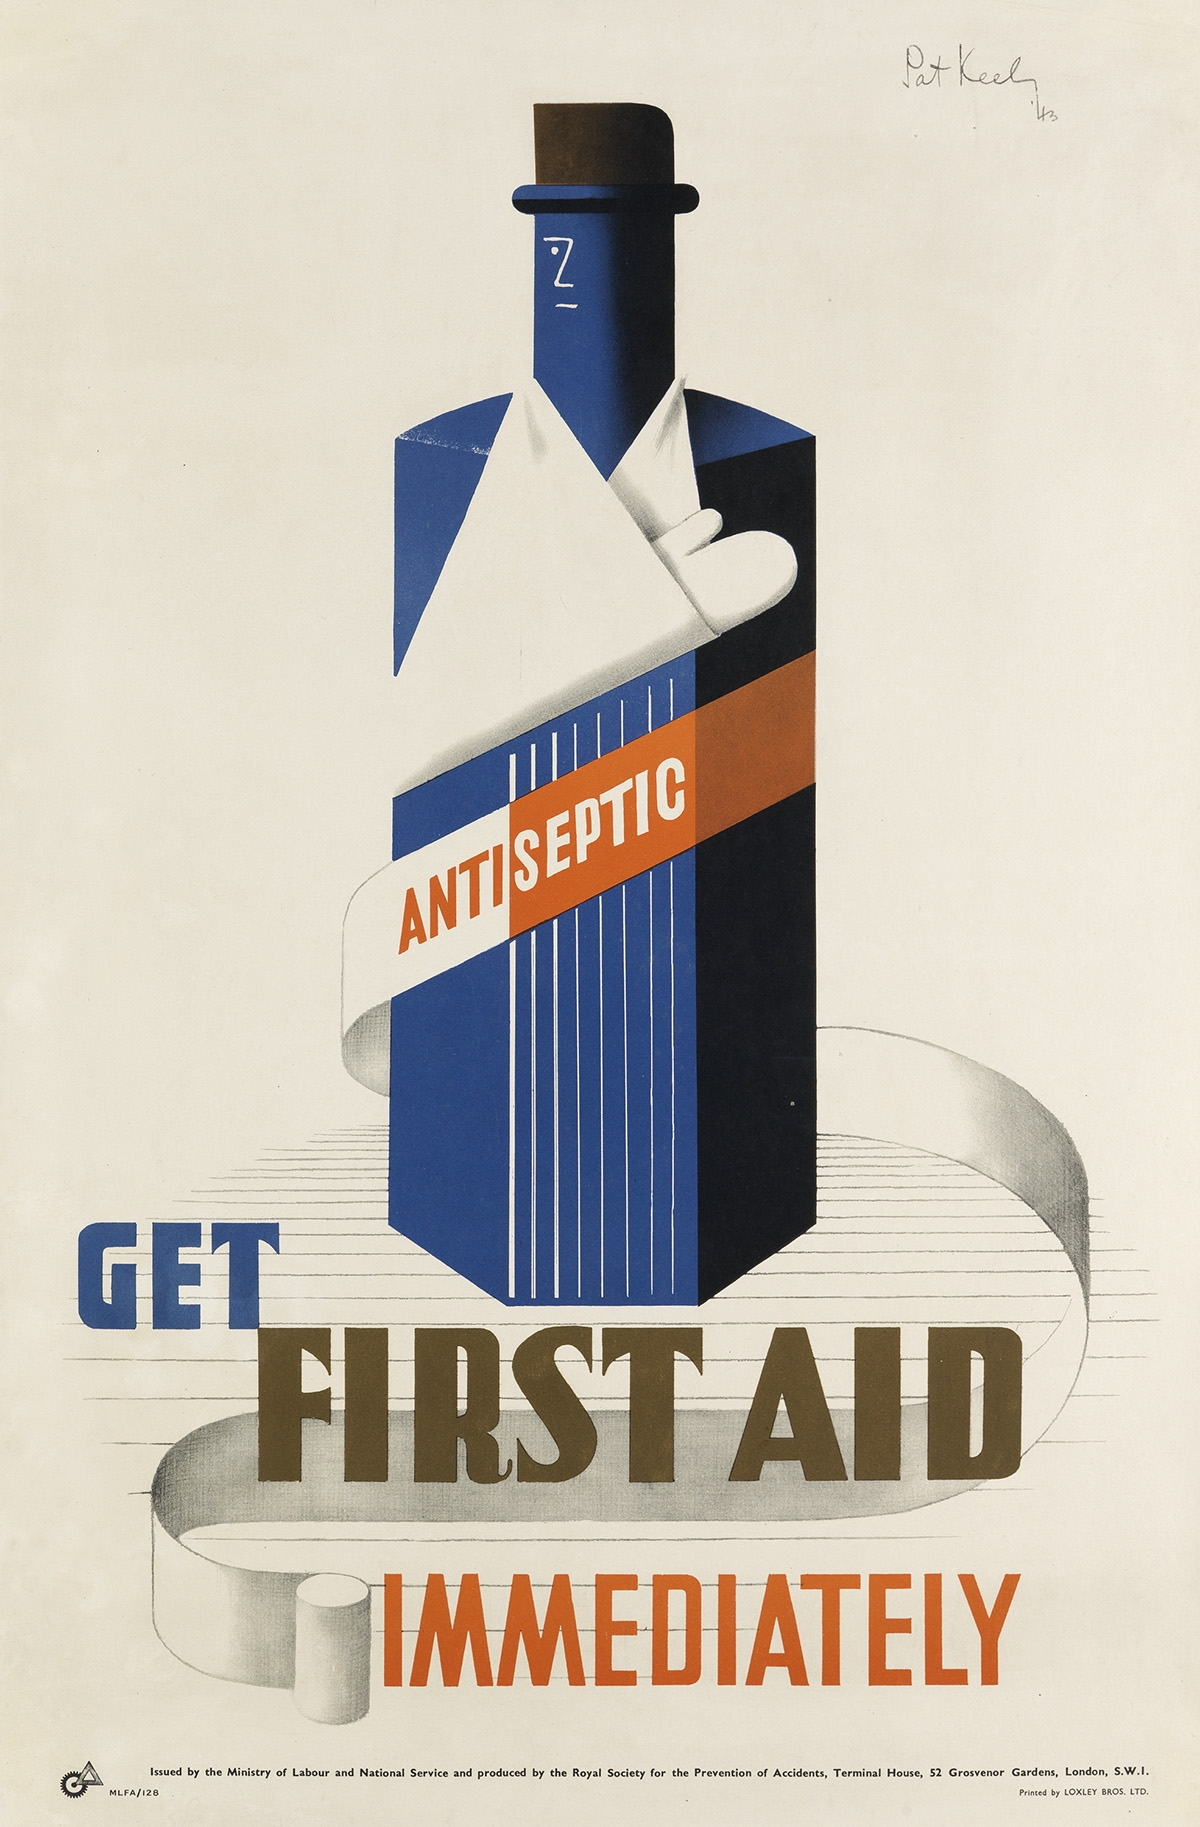 Patrick CokayneKeely | GET FIRST AID IMMEDIATELY